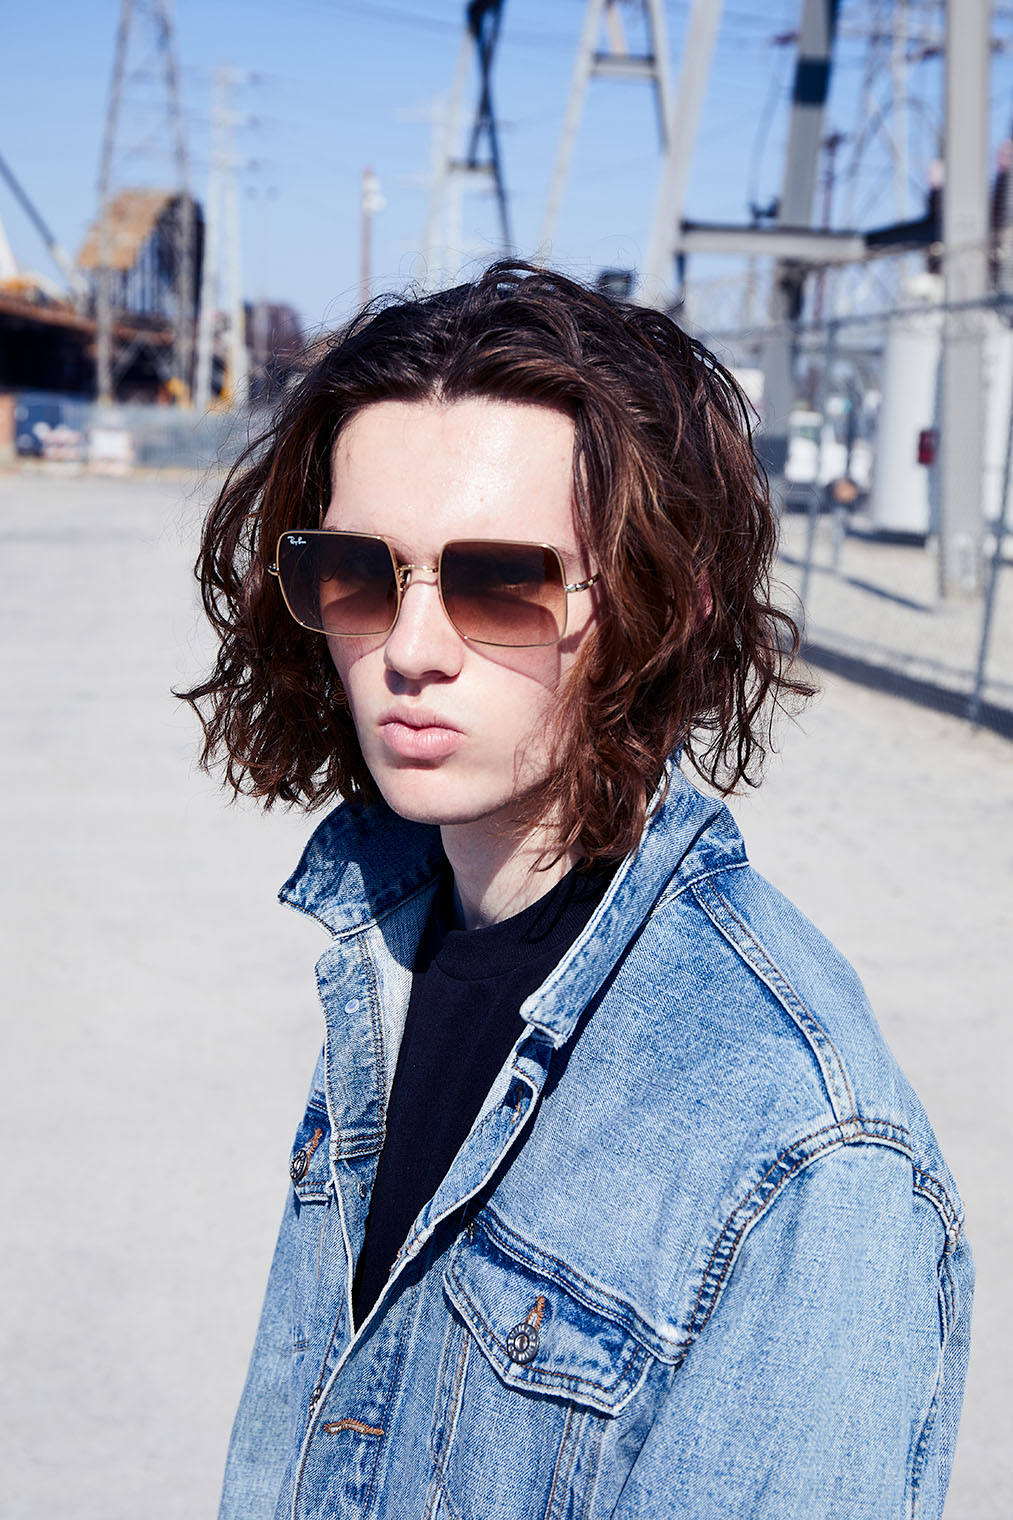 masculine model in denim - jeans jacket - and sunglasses in Los Angeles